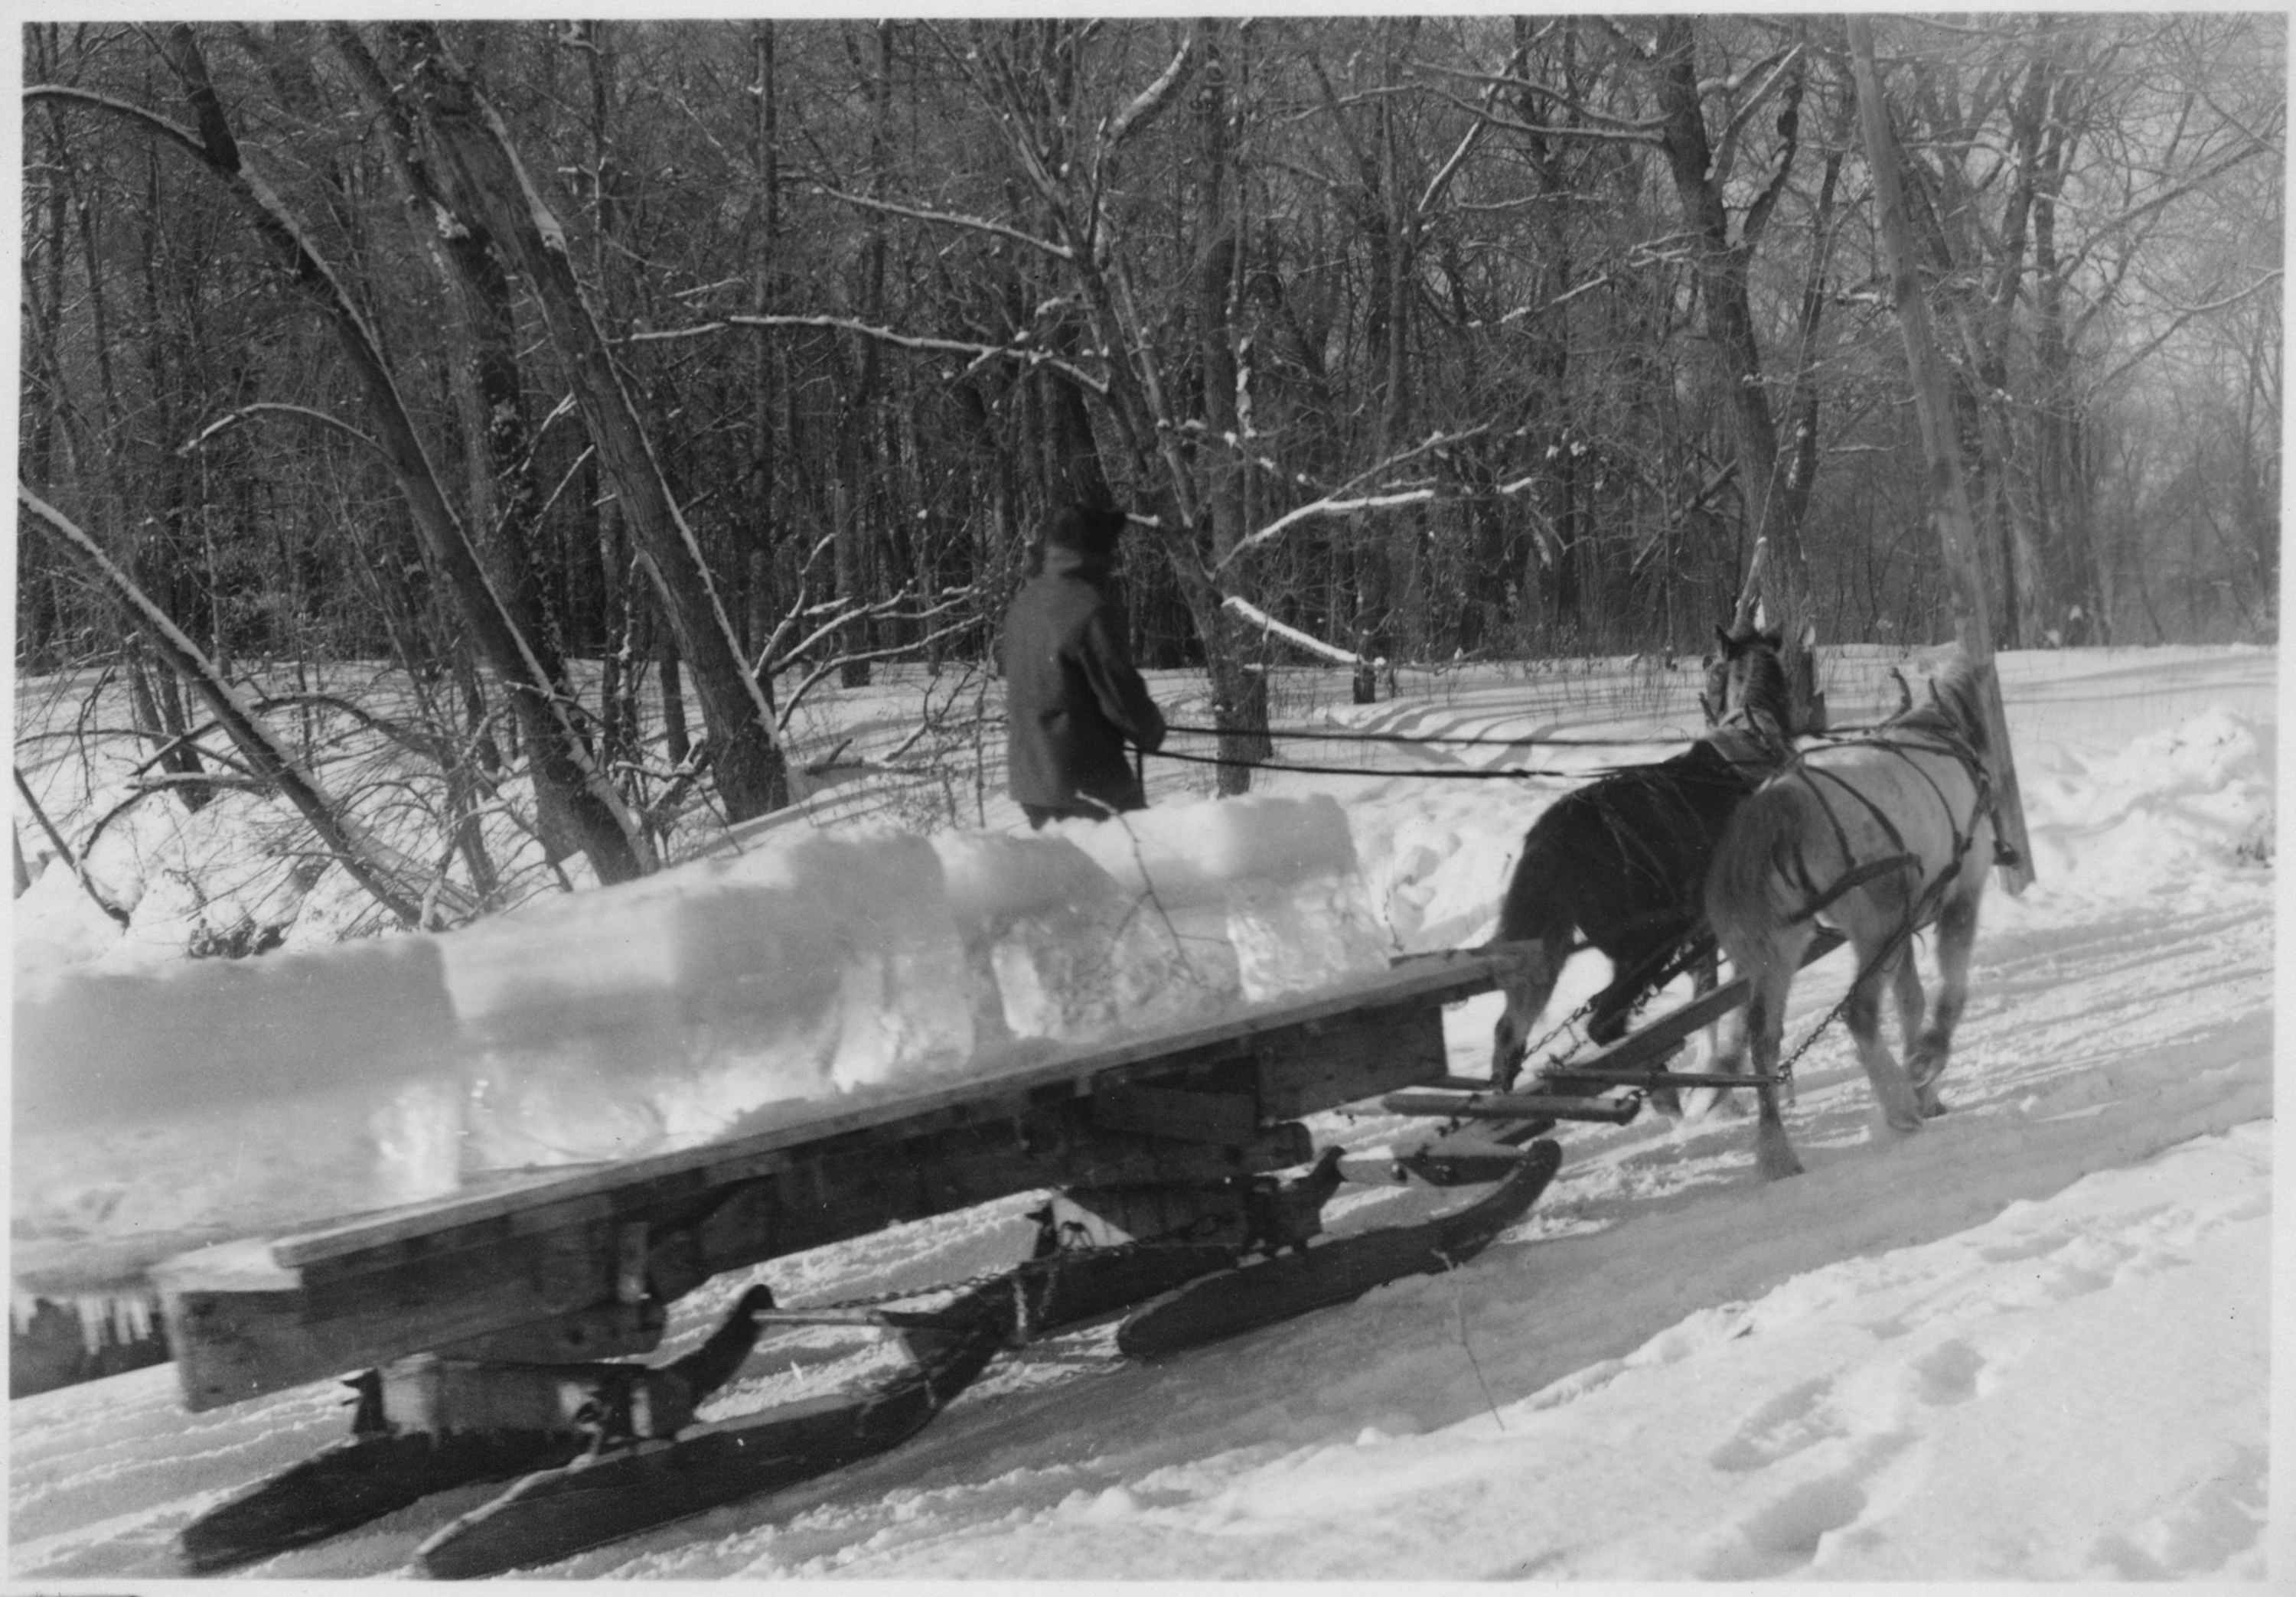 Logging Sled http://commons.wikimedia.org/wiki/File:Hauling_cut_ice_on_horse_drawn_sled_-_NARA_-_285734.jpg